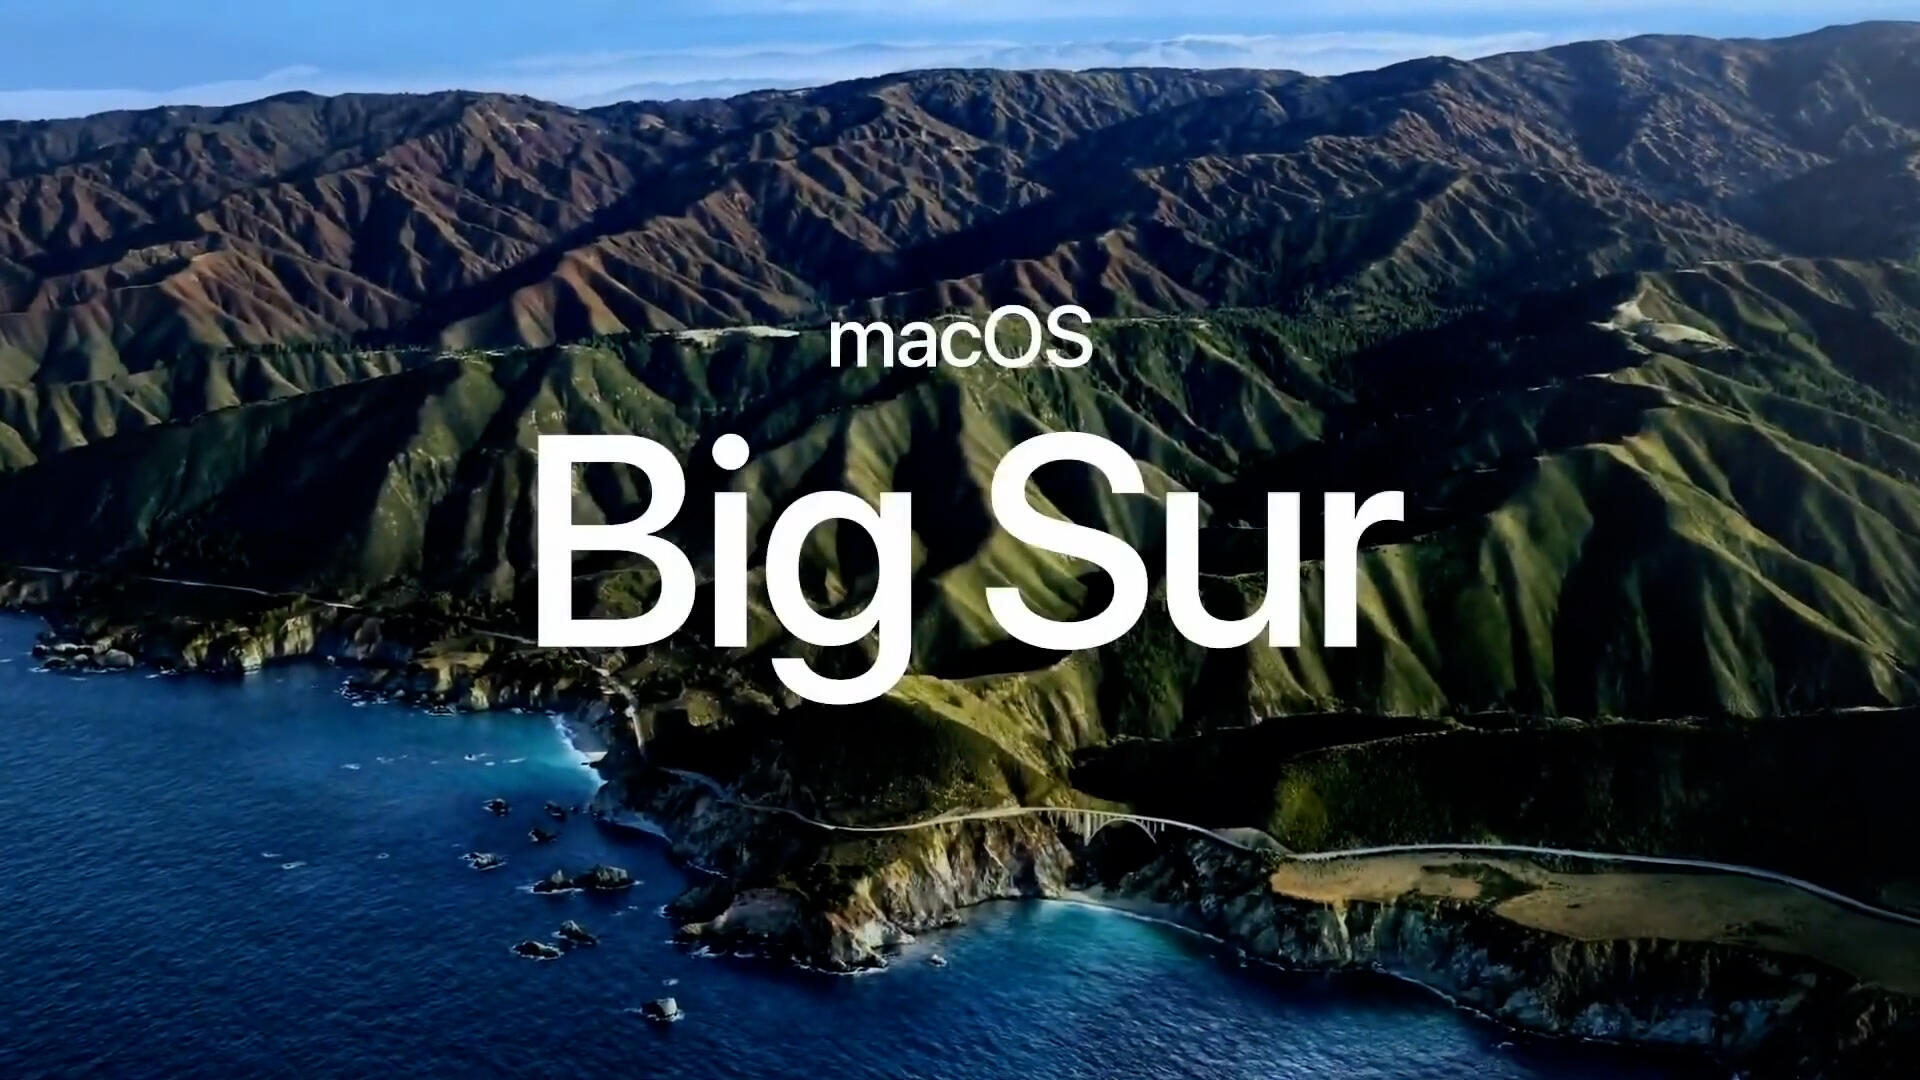 Video: MacOS Big Sur review: A 2020 rebirth to match new hardware